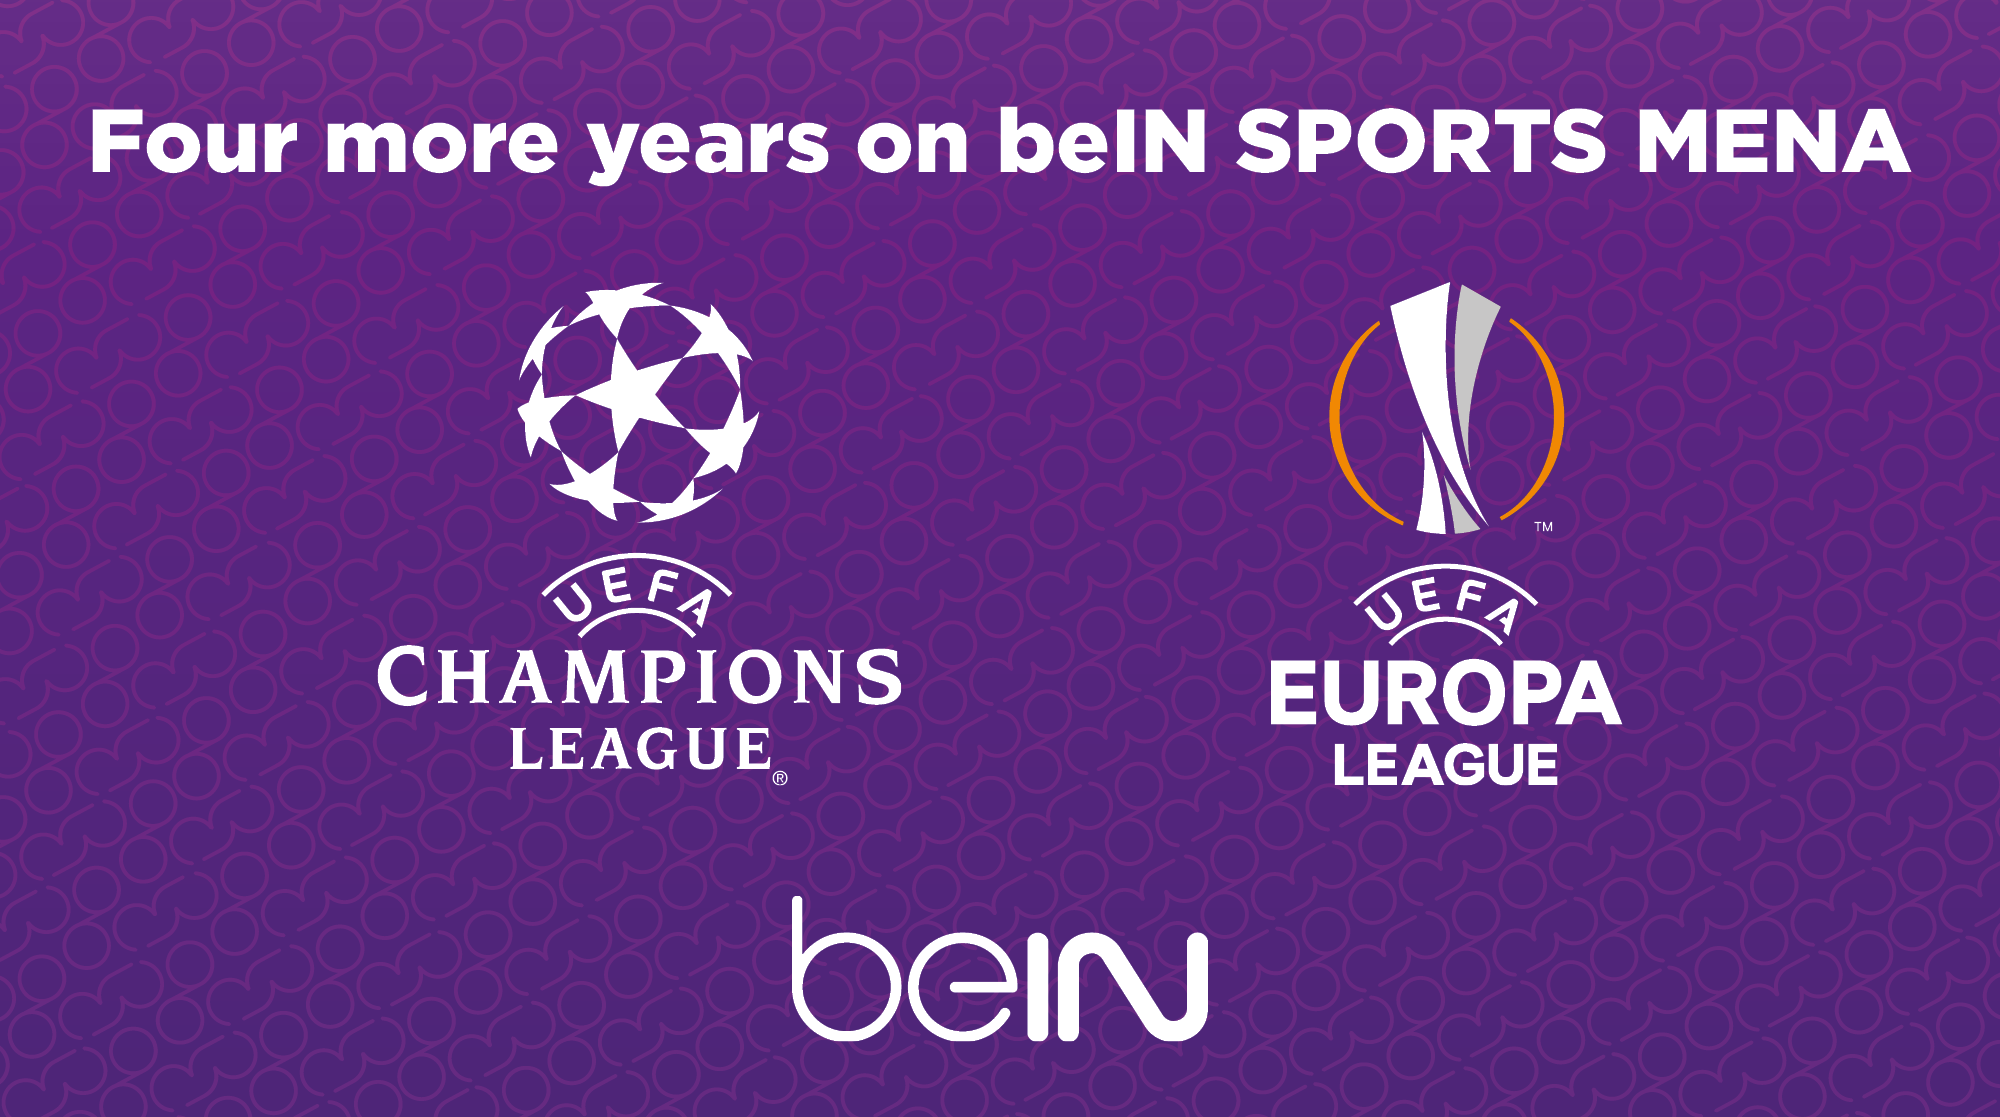 four more years of uefa champions league and europa league on bein